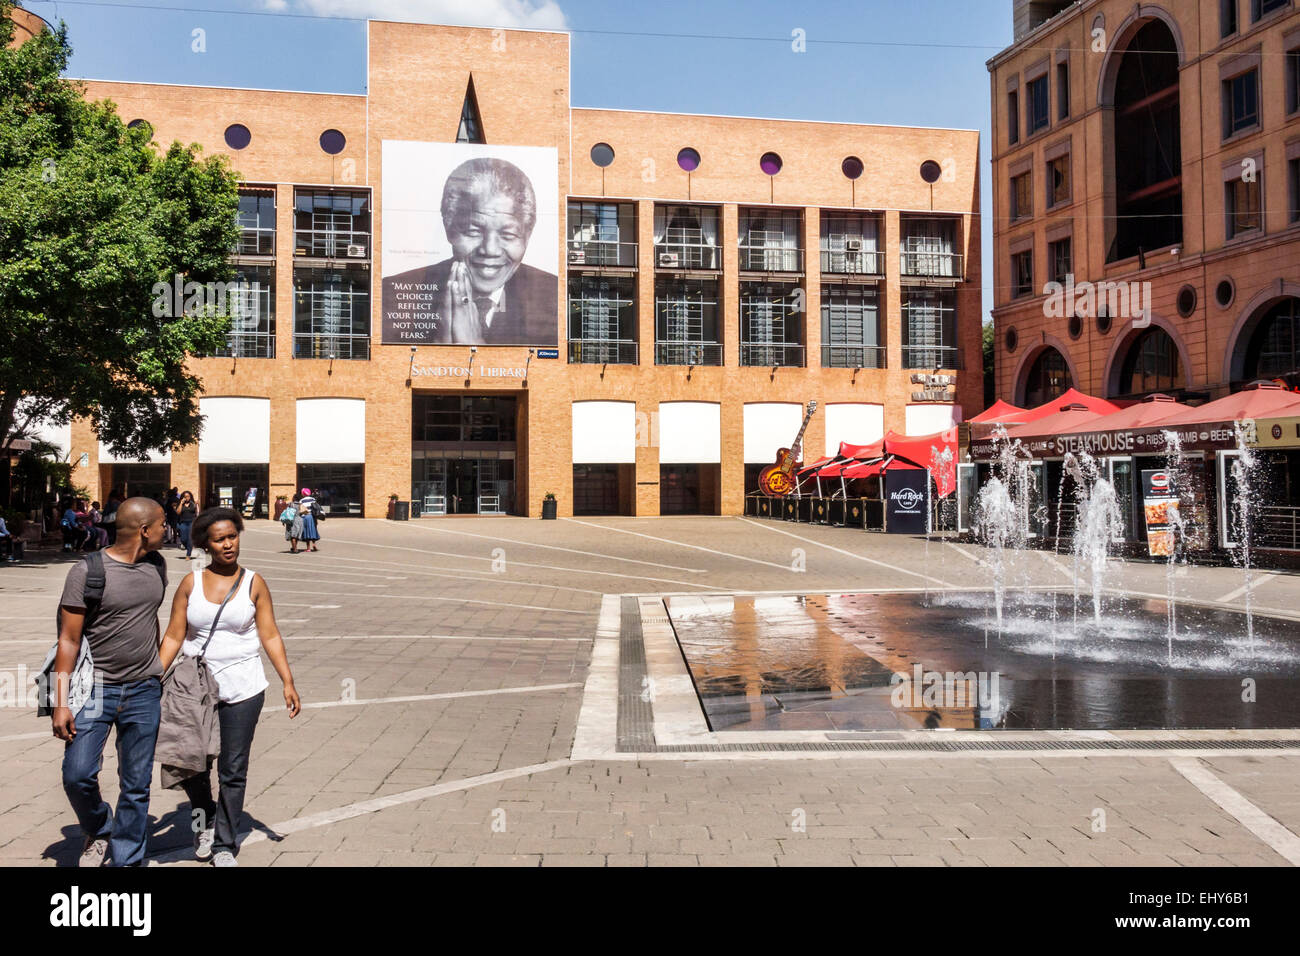 Johannesburg South Africa African Sandton Nelson Mandela Square public fountain Black man woman couple Sandton Library - Stock Image